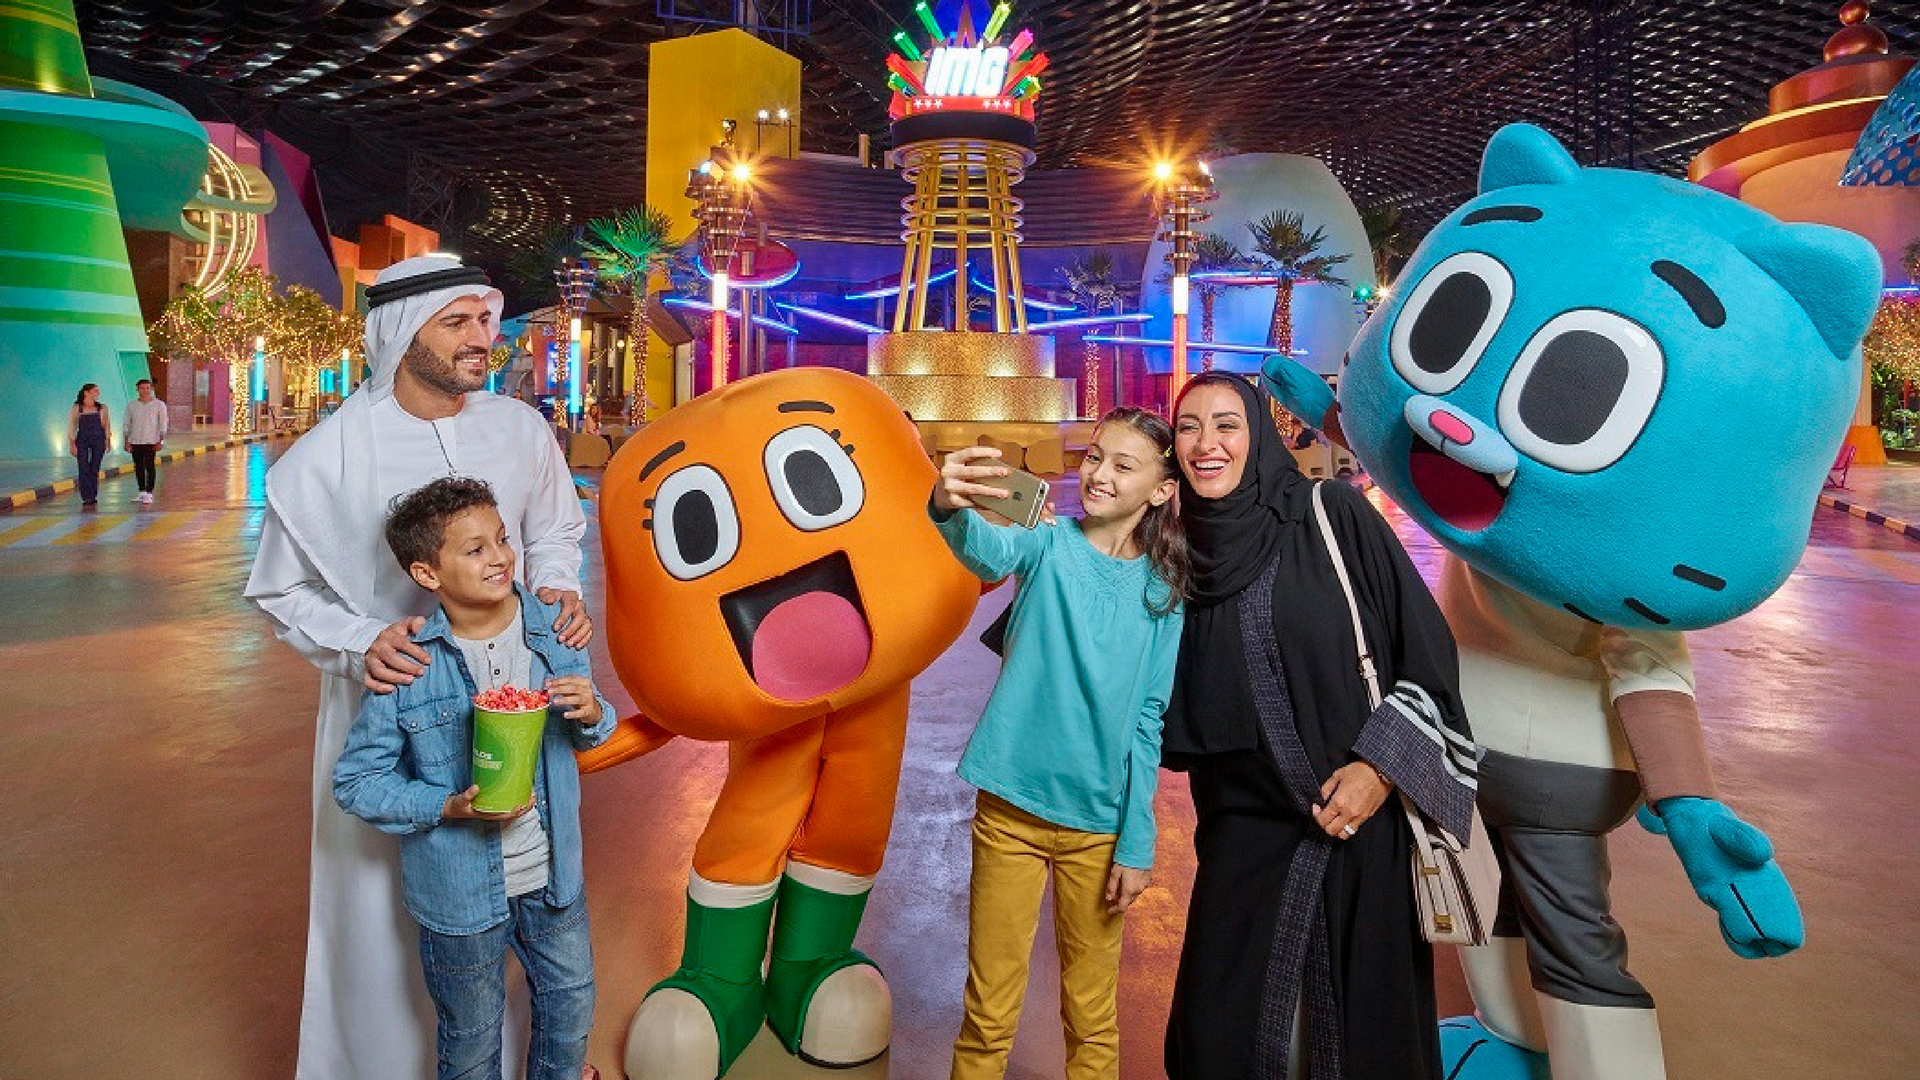 Here's How To Get Free Tickets To IMG Worlds of Adventure